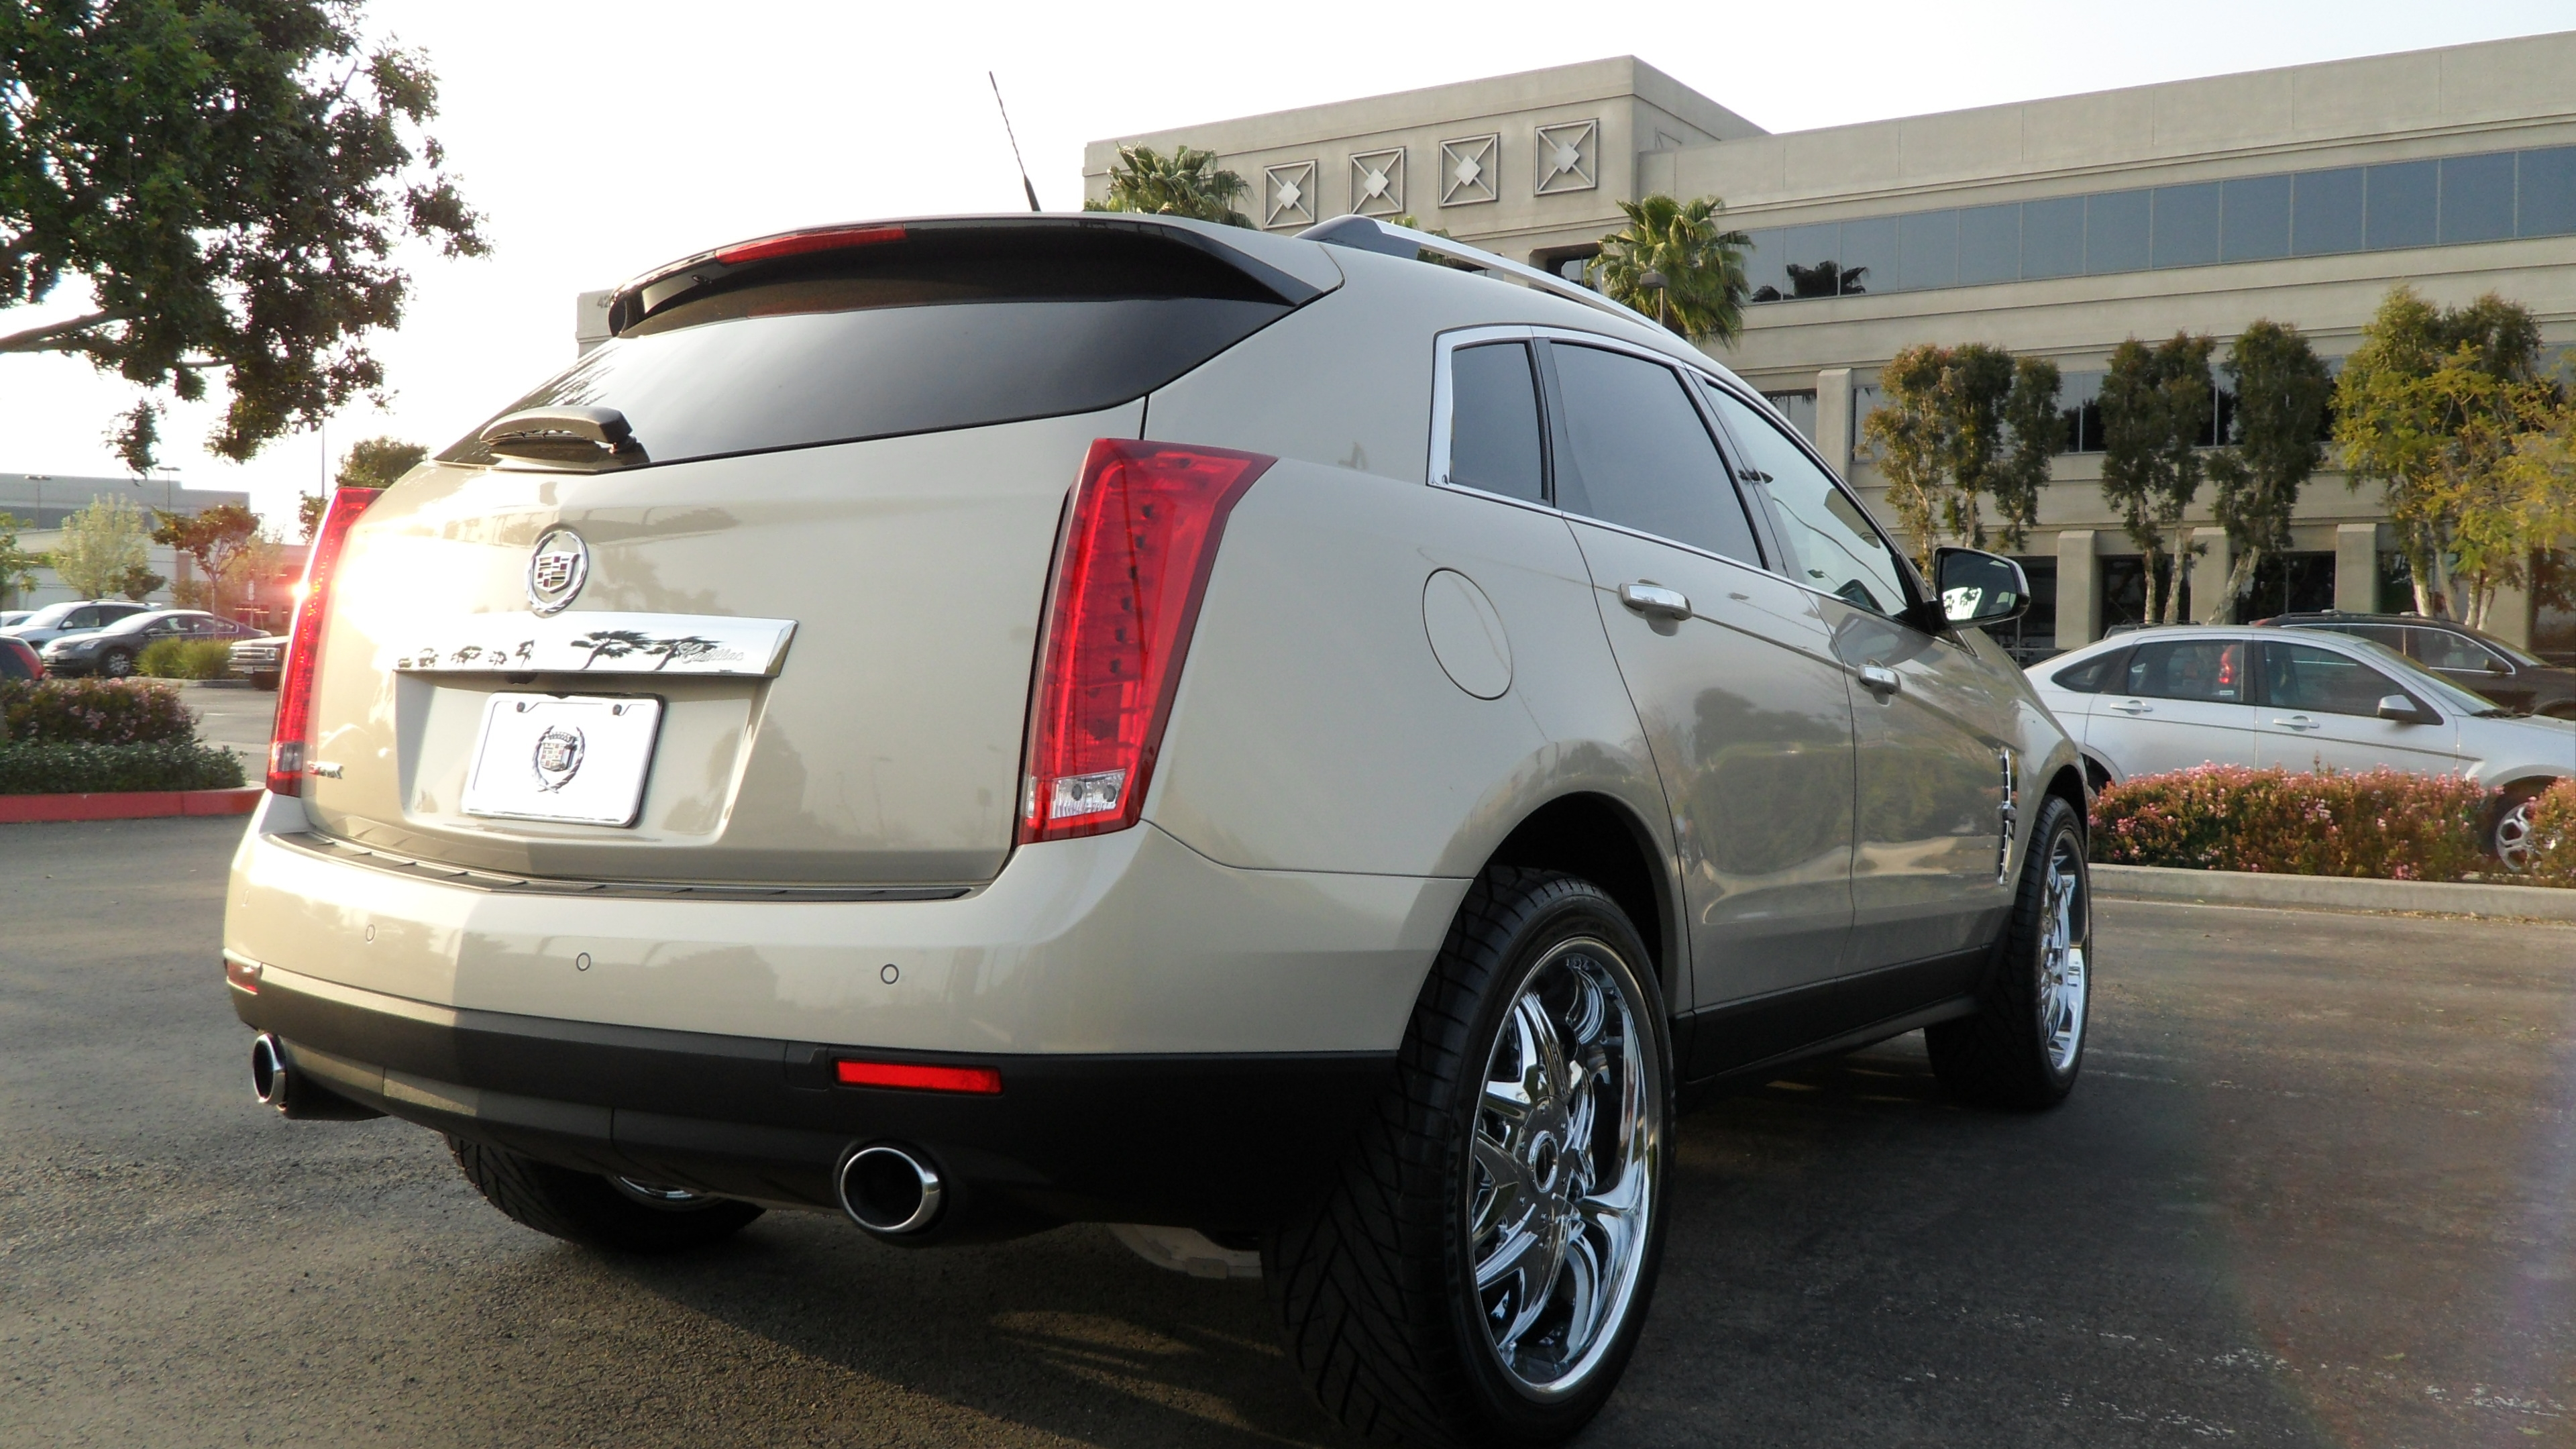 srx the review turbo cadillac img